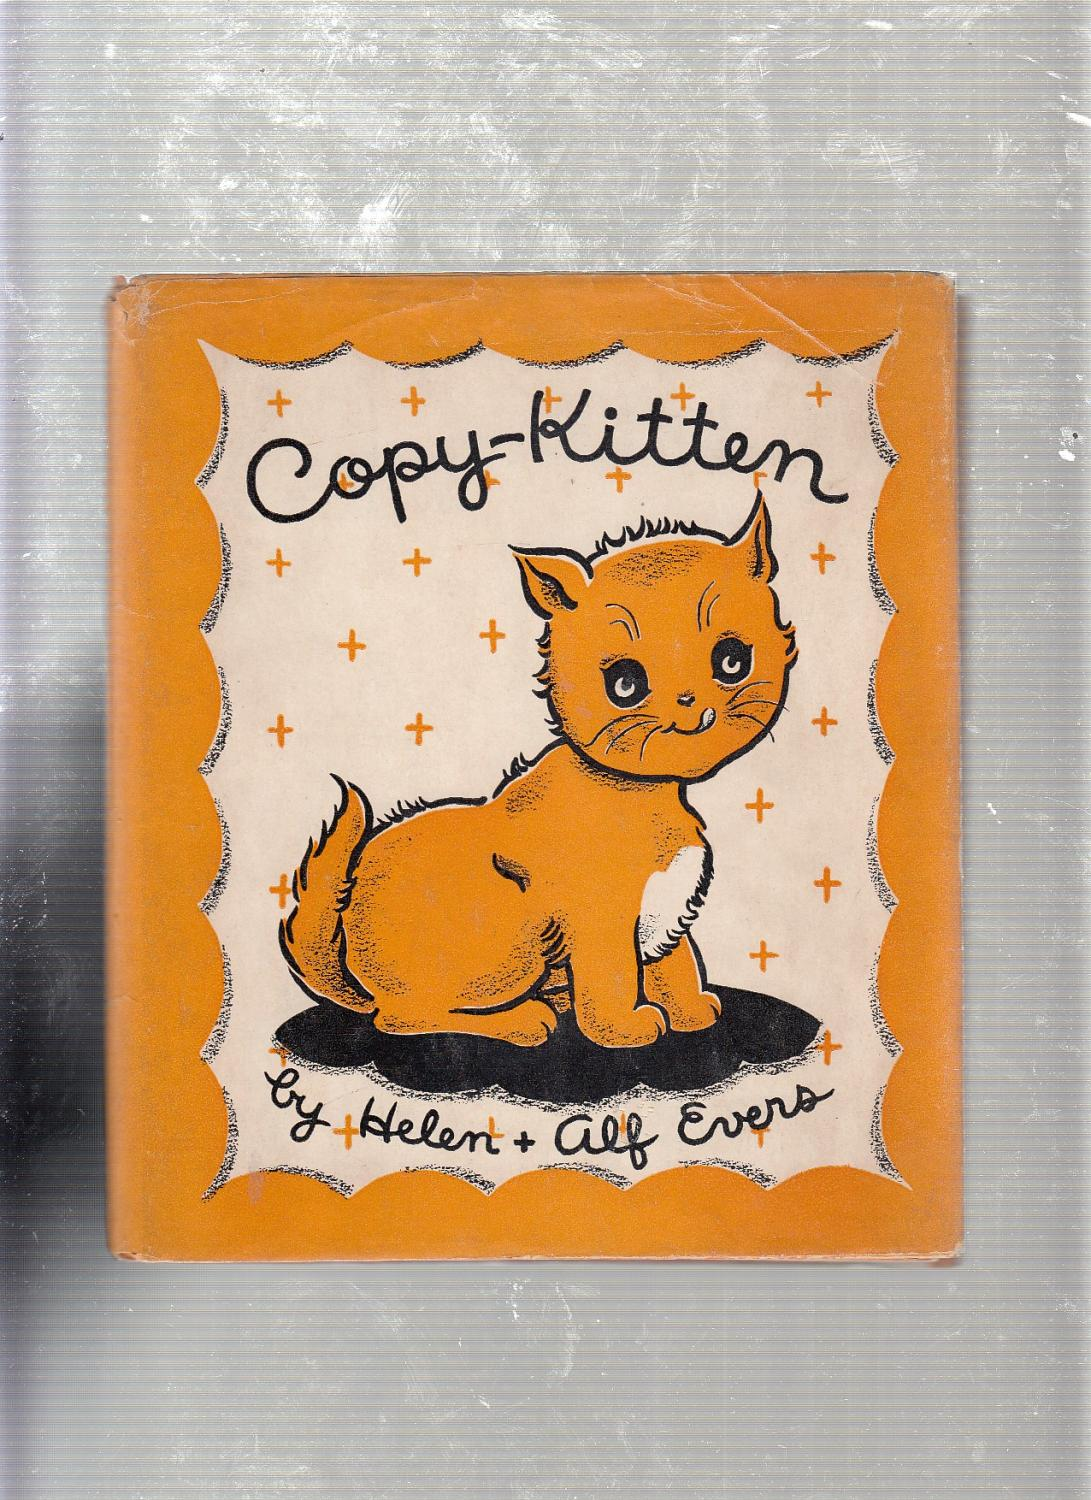 CopyKitten_in_original_dust_jacketa_nd_signed_by_both_authors_Helen_and_Alf_Evers_Très_bon_Couverture_rigide